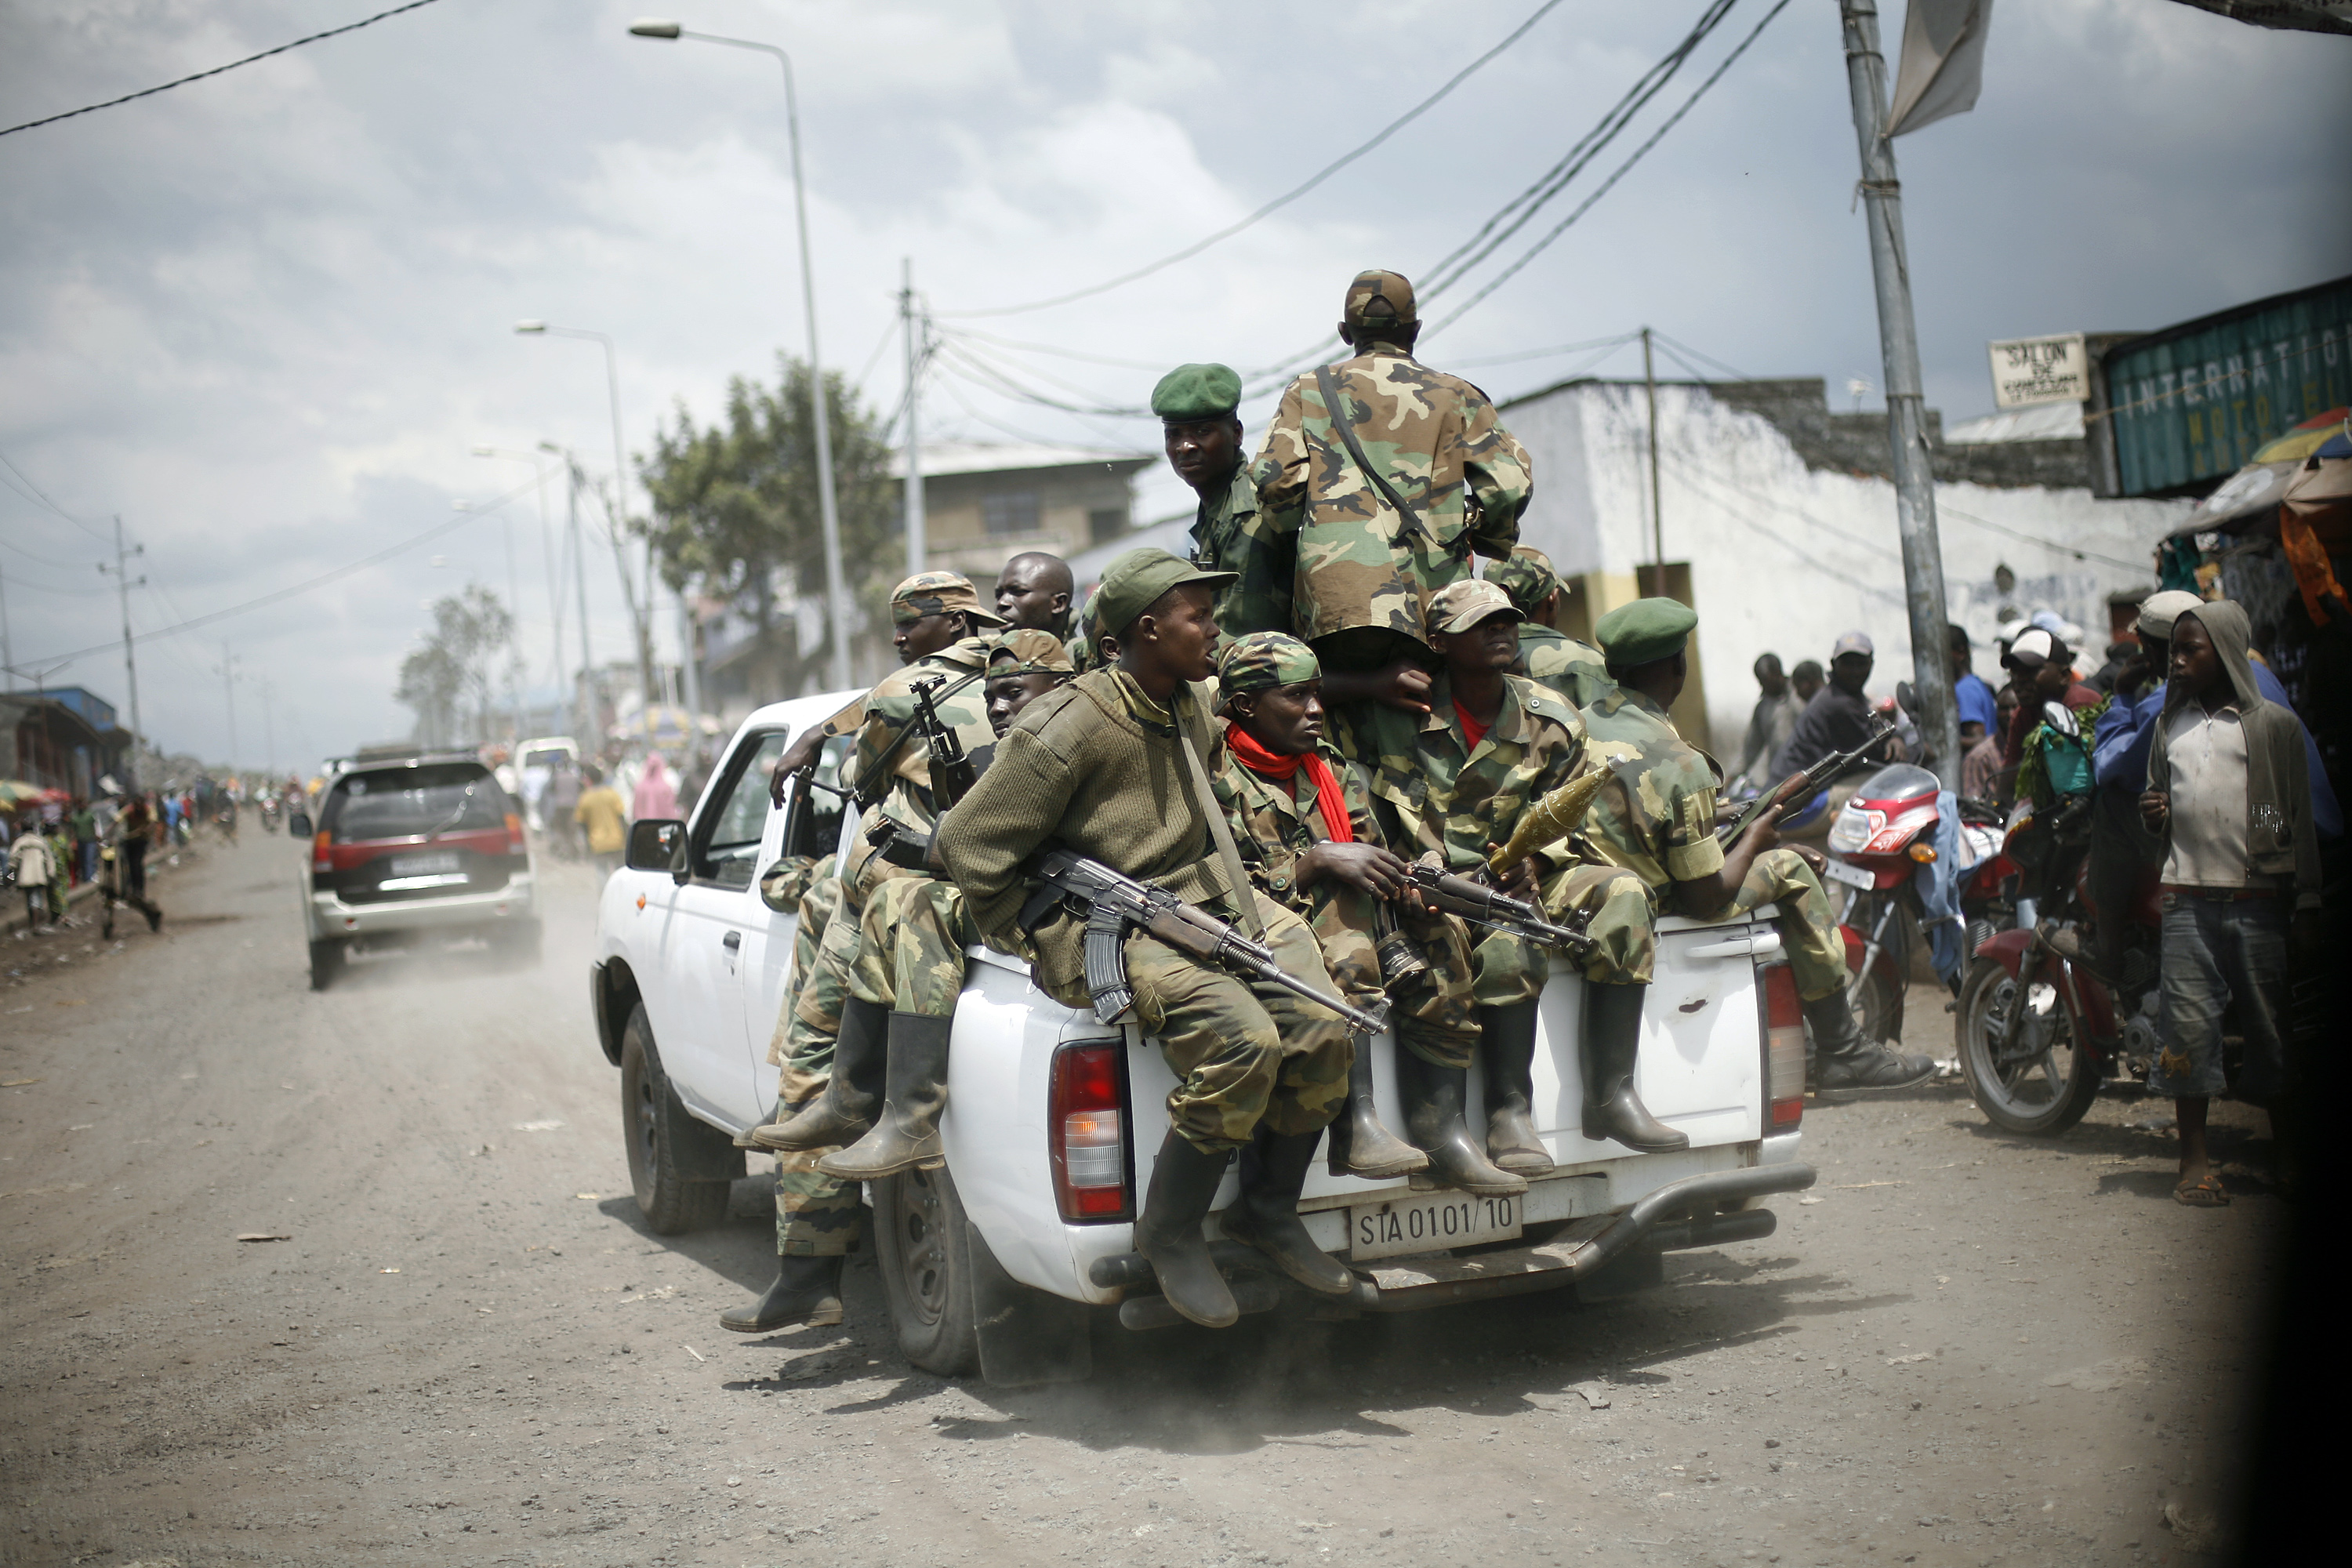 Policy Alert: Reintegrating Warlords into Congo's Army